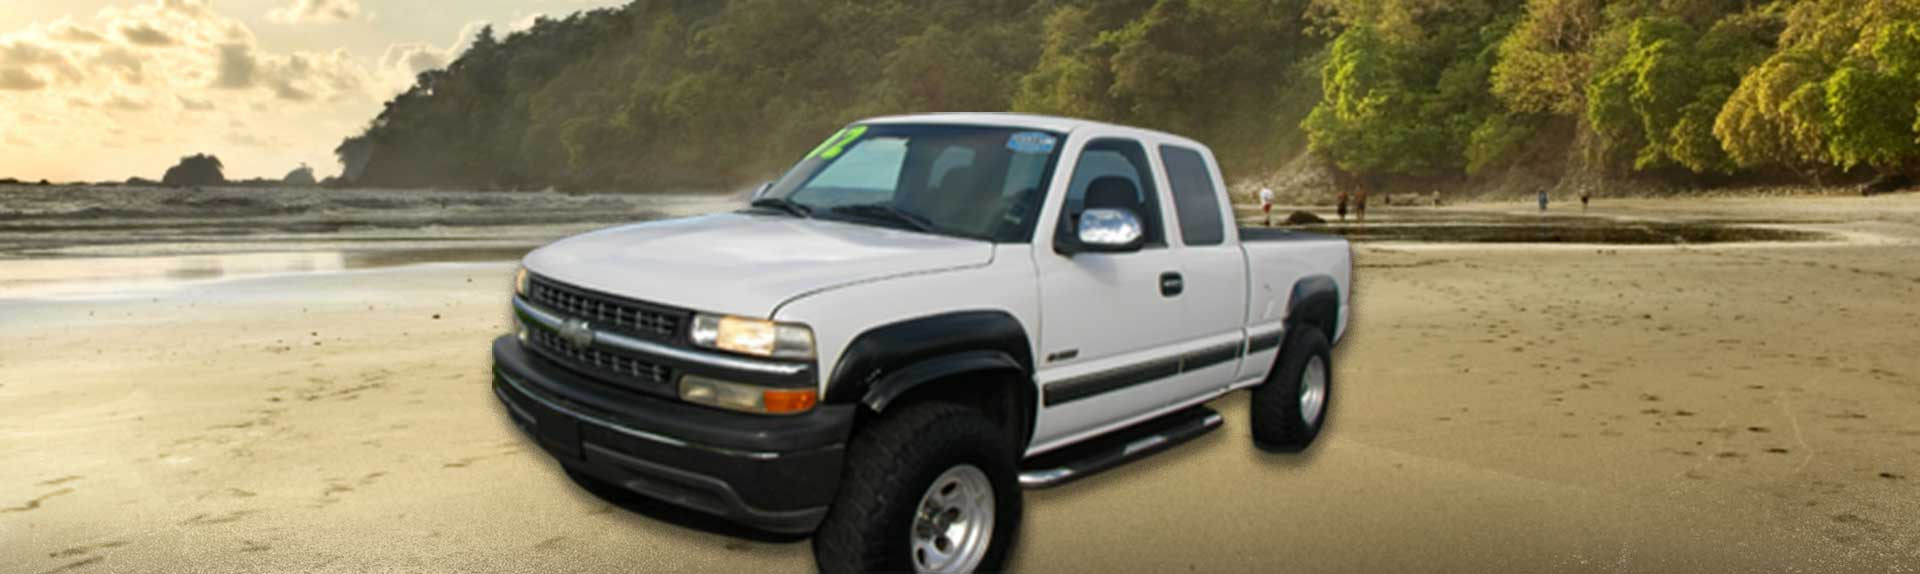 Craigslist Oahu Cars And Trucks For Sale By Owner >> Garden Island Auto Sales Car Dealer In Lihue Hi